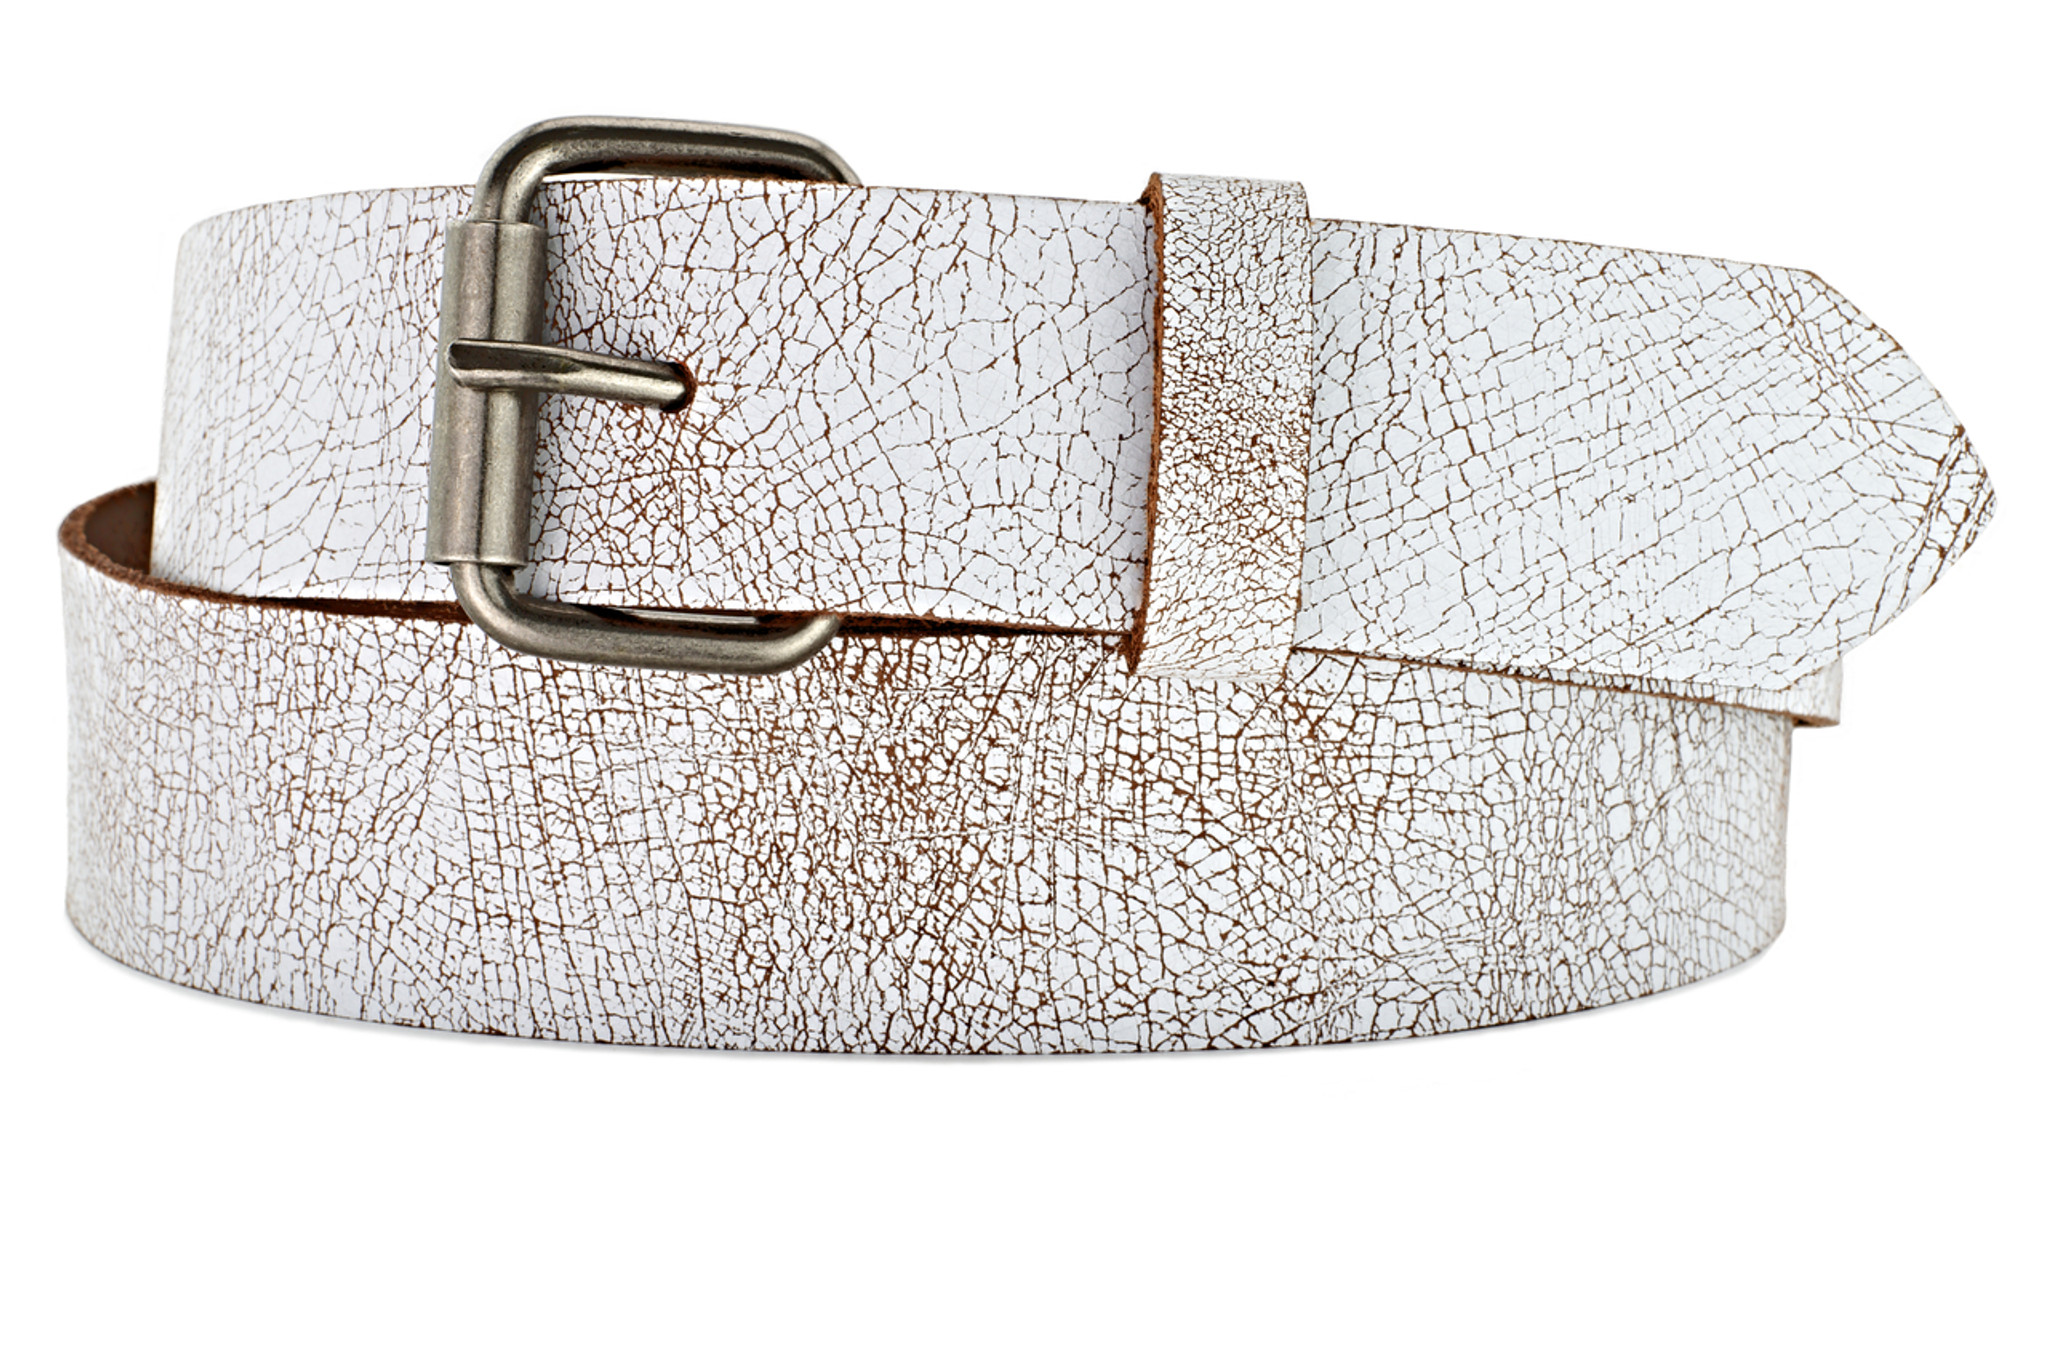 Vintage Crackle White Leather Belt